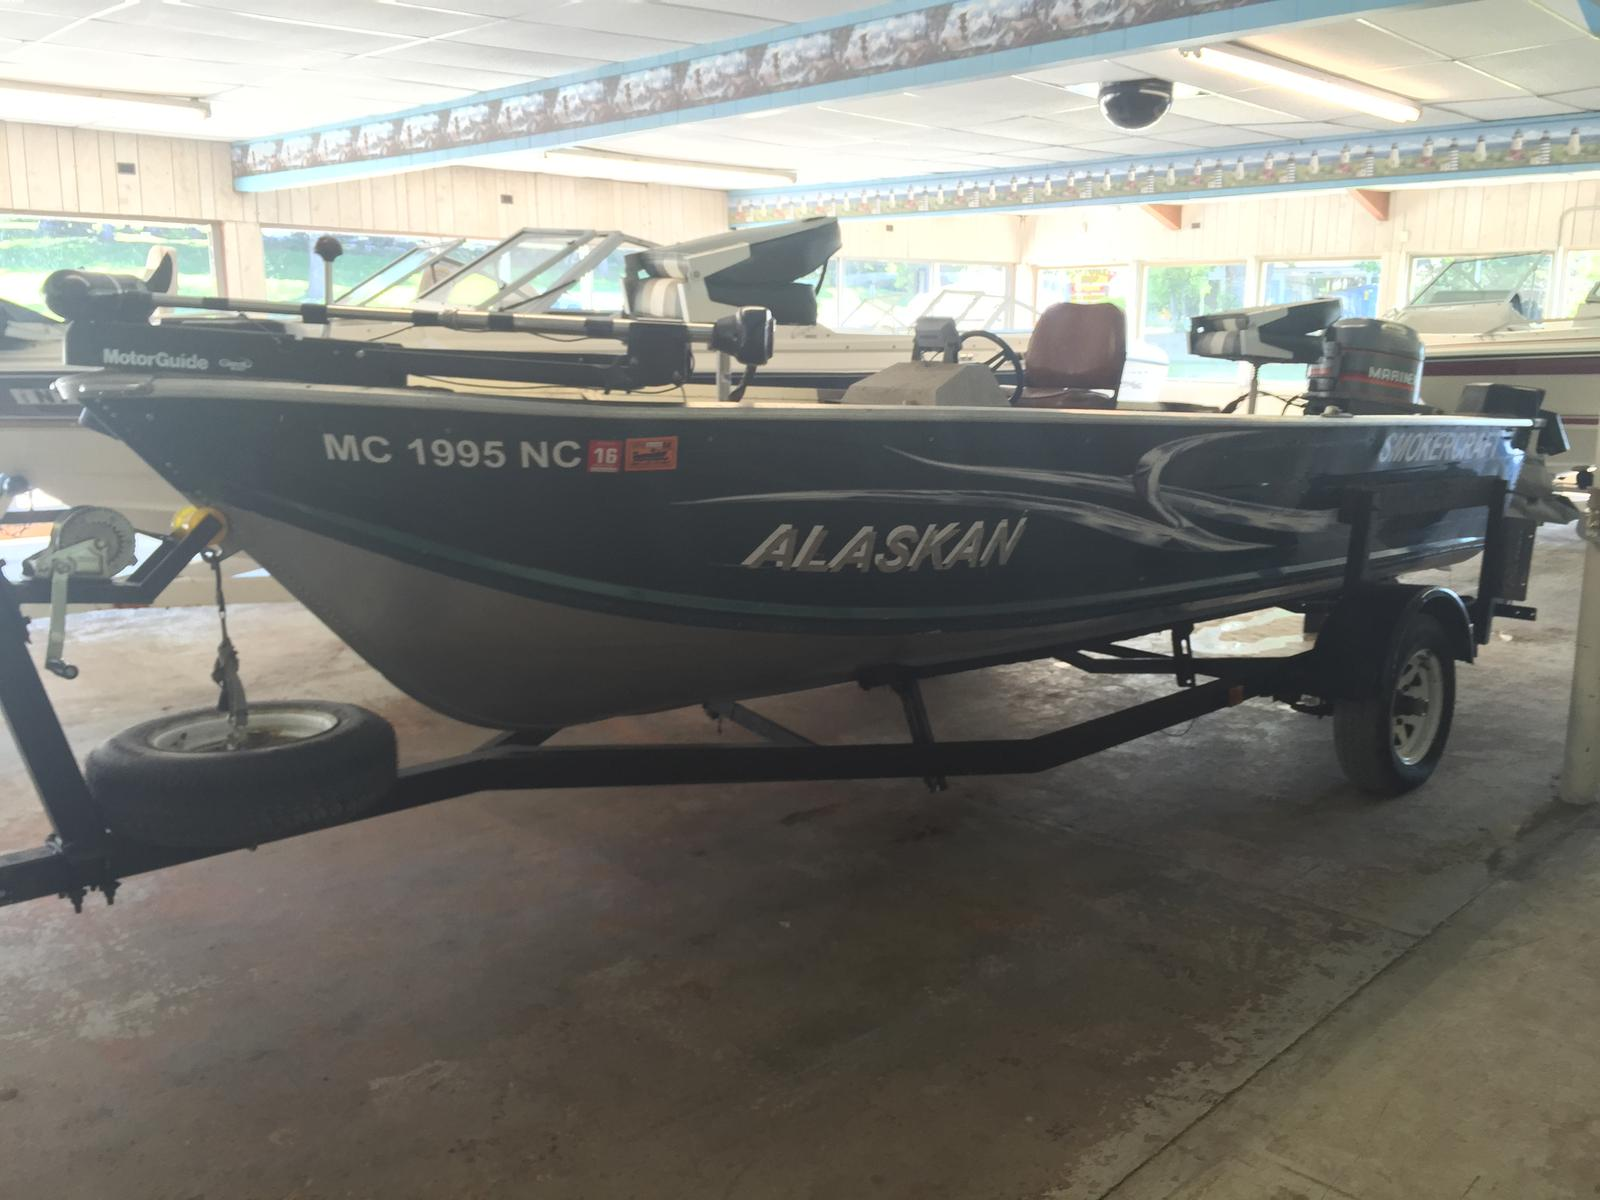 Center console smoker craft boats for sale for Smoker craft alaskan 15